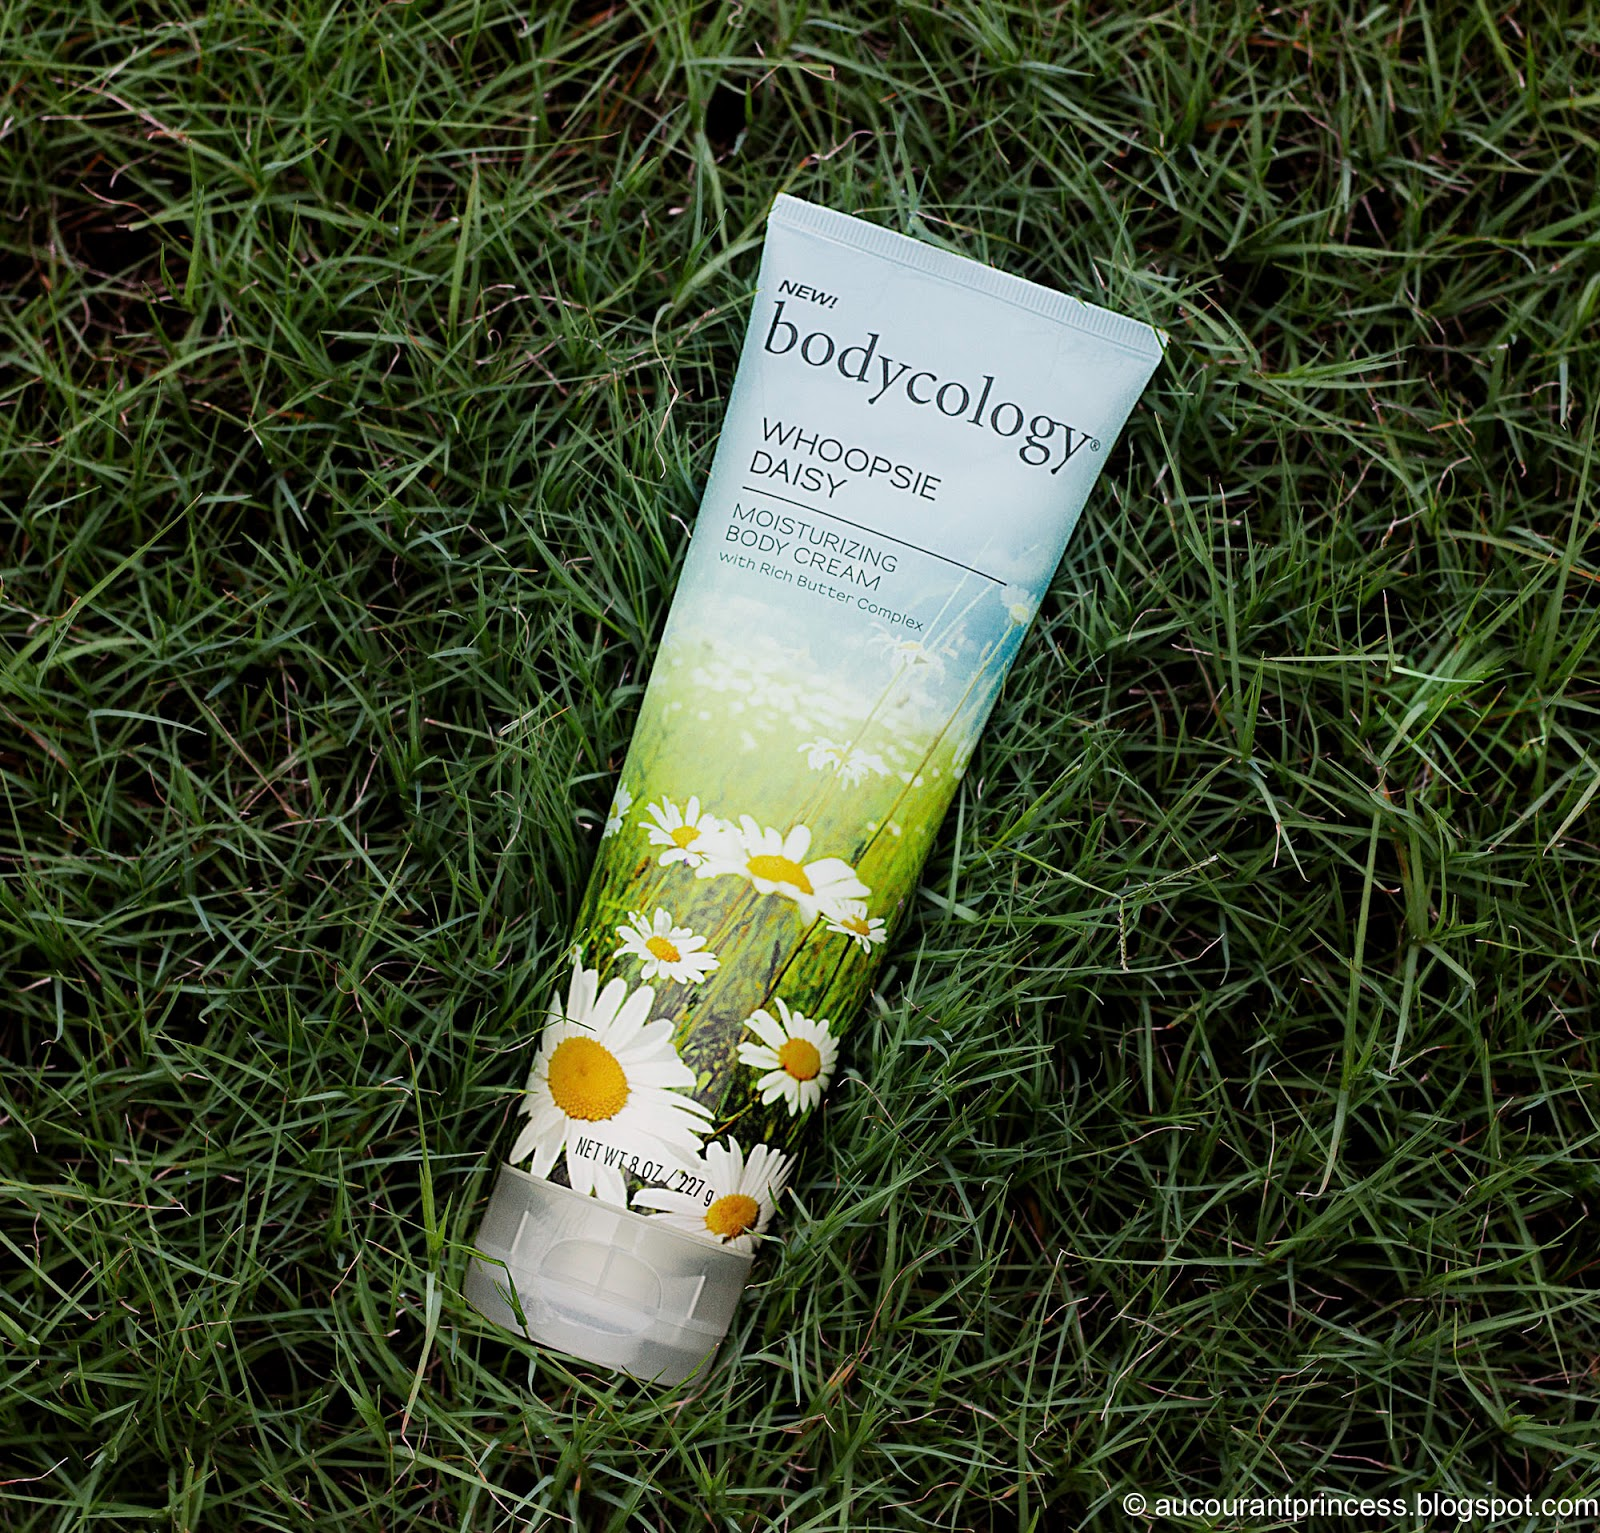 bodycology Moisturizing Body Cream with Rich Butter Complex in Whoopsie Daisy Product Review